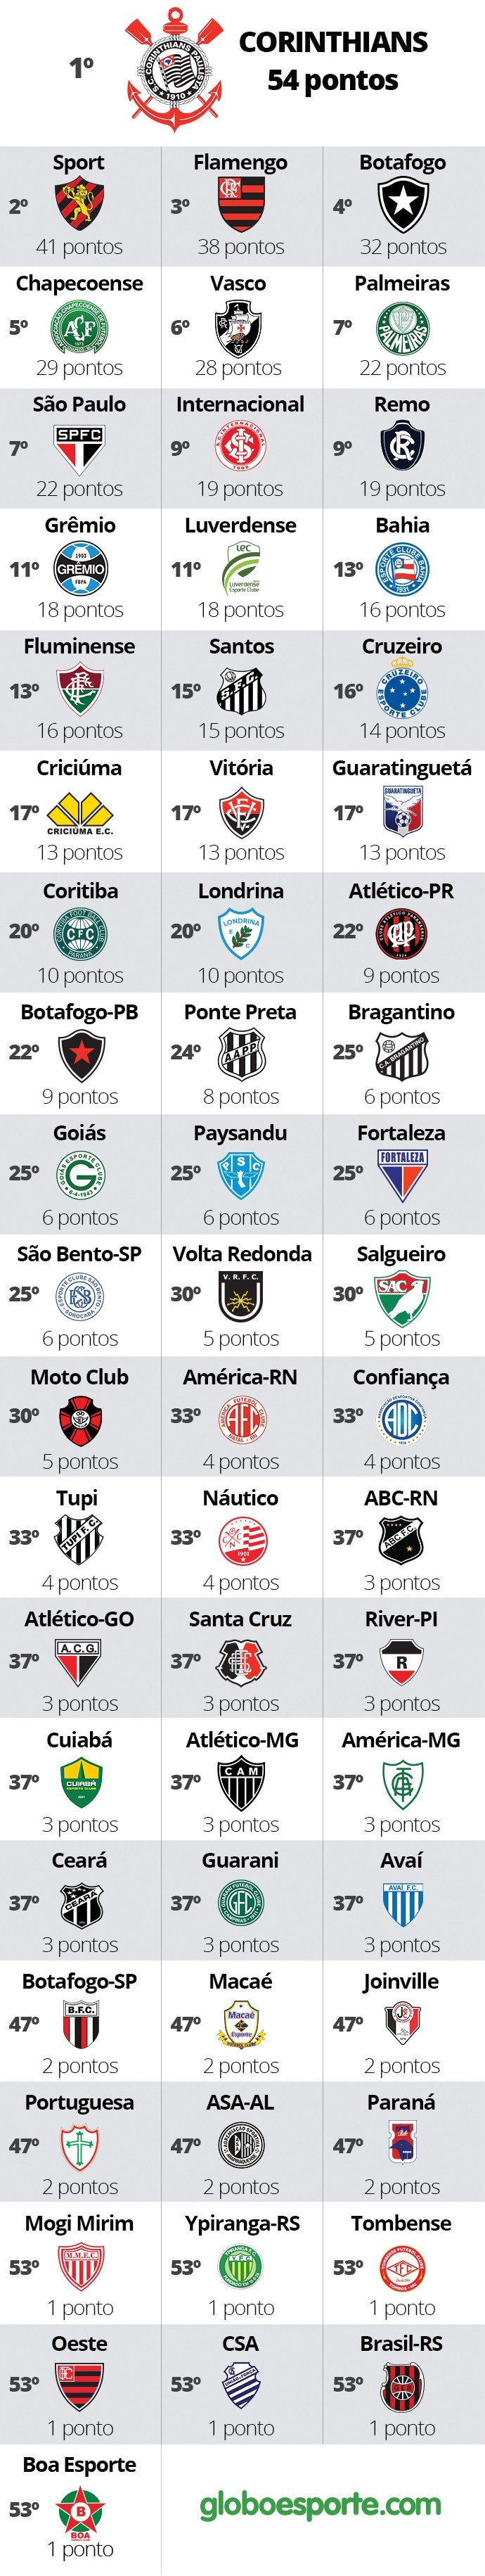 Info Ranking Clubes v1